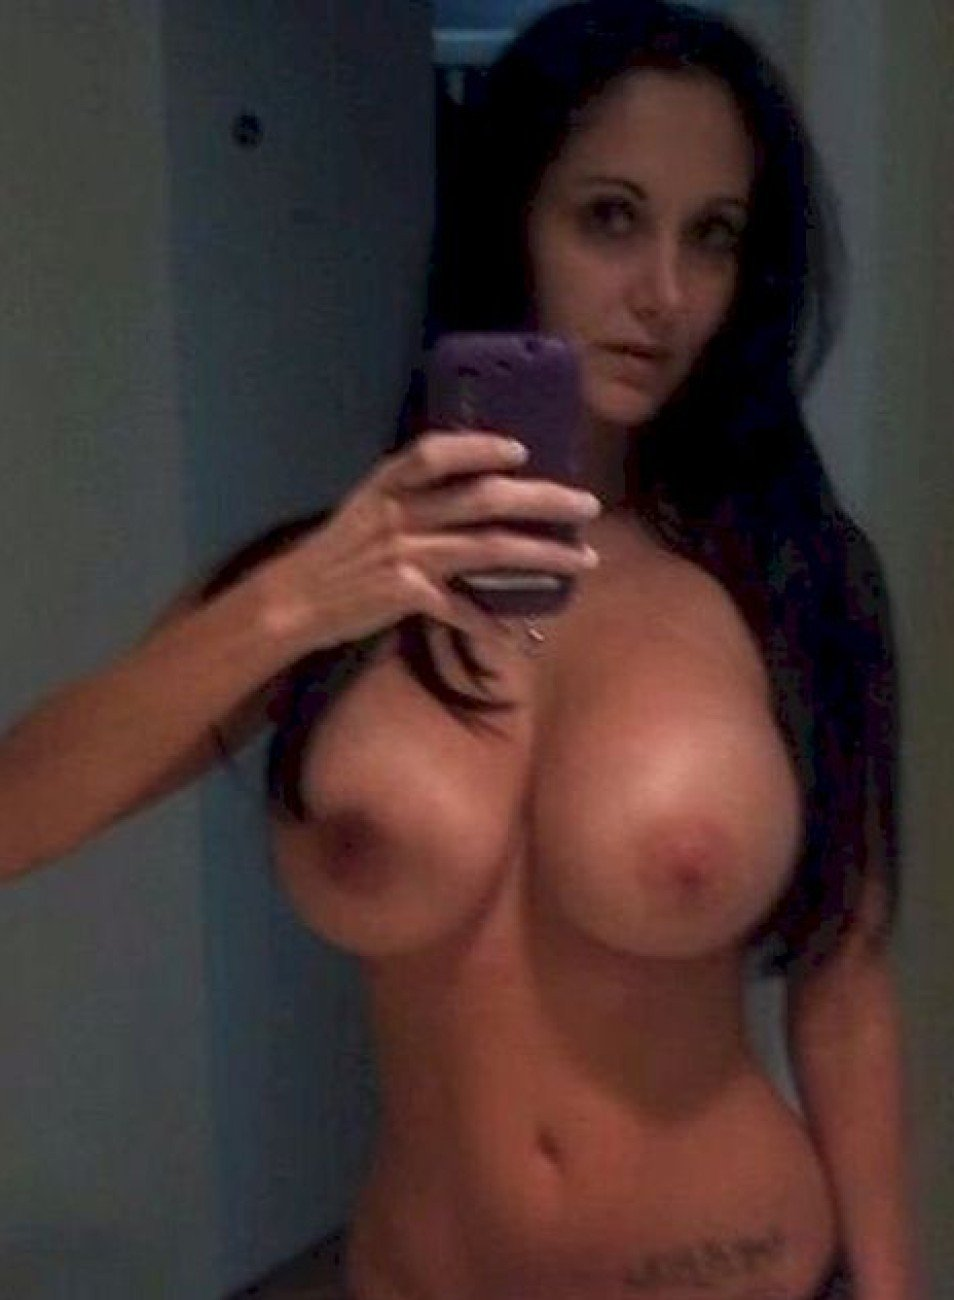 aylar lie diane free porn videos